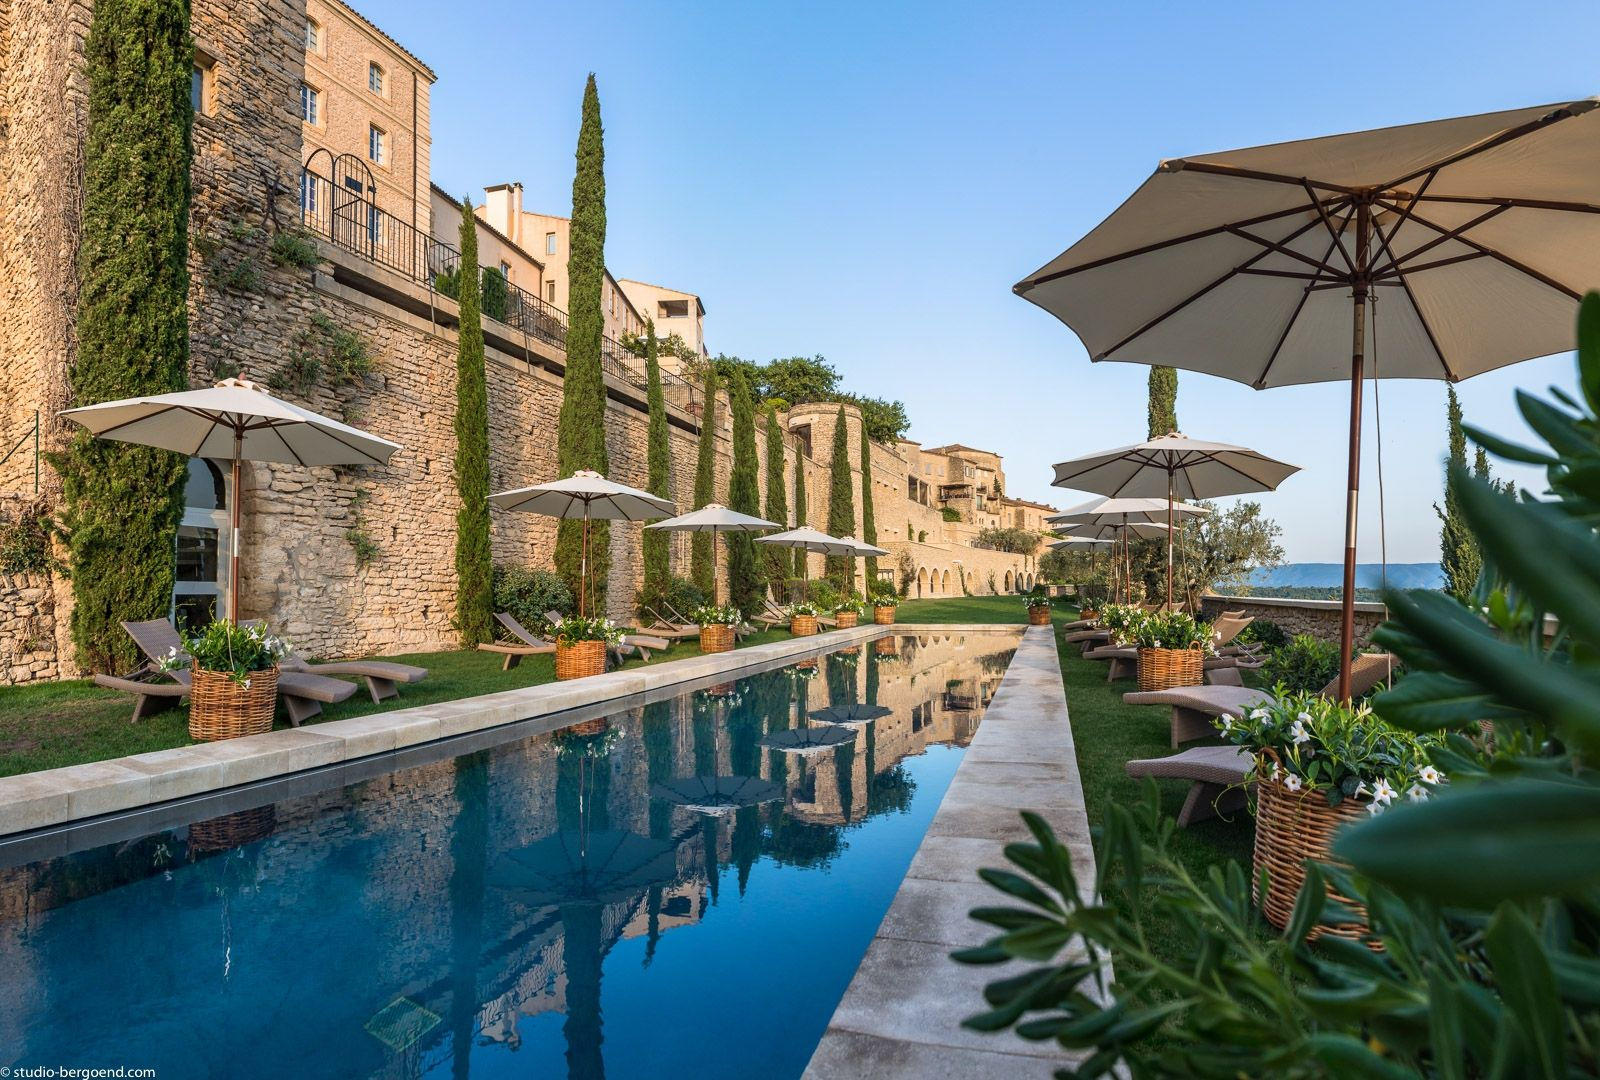 La bastide de gordes h tel de luxe 5 toiles au c ur du for Top hotel france